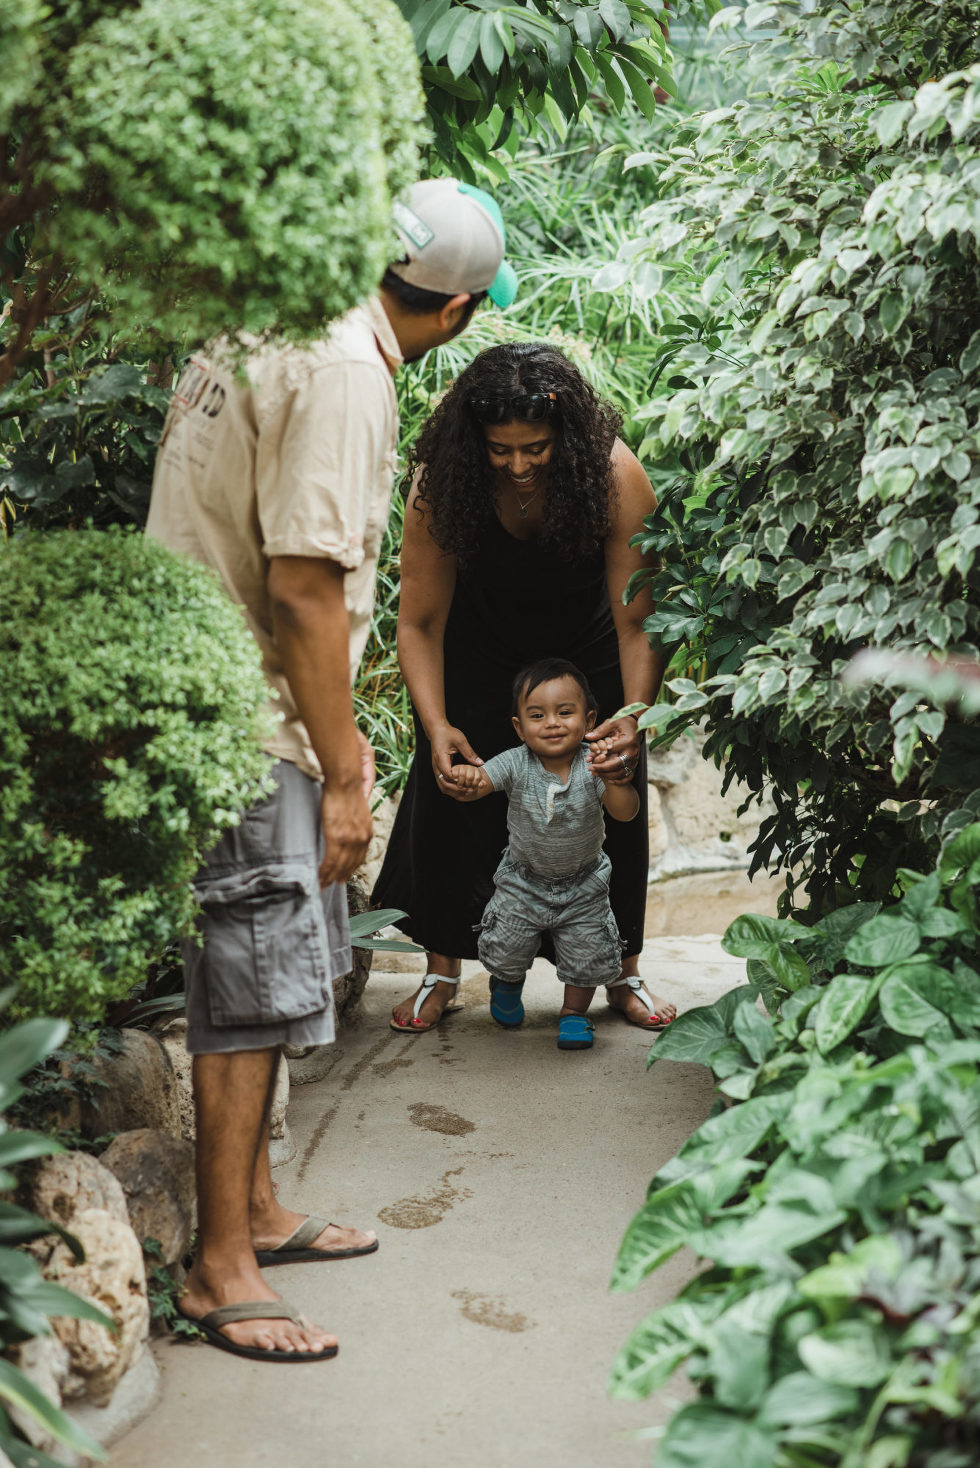 father watches as mother helps child walk through green gardens family photo sessions Gillian Foster